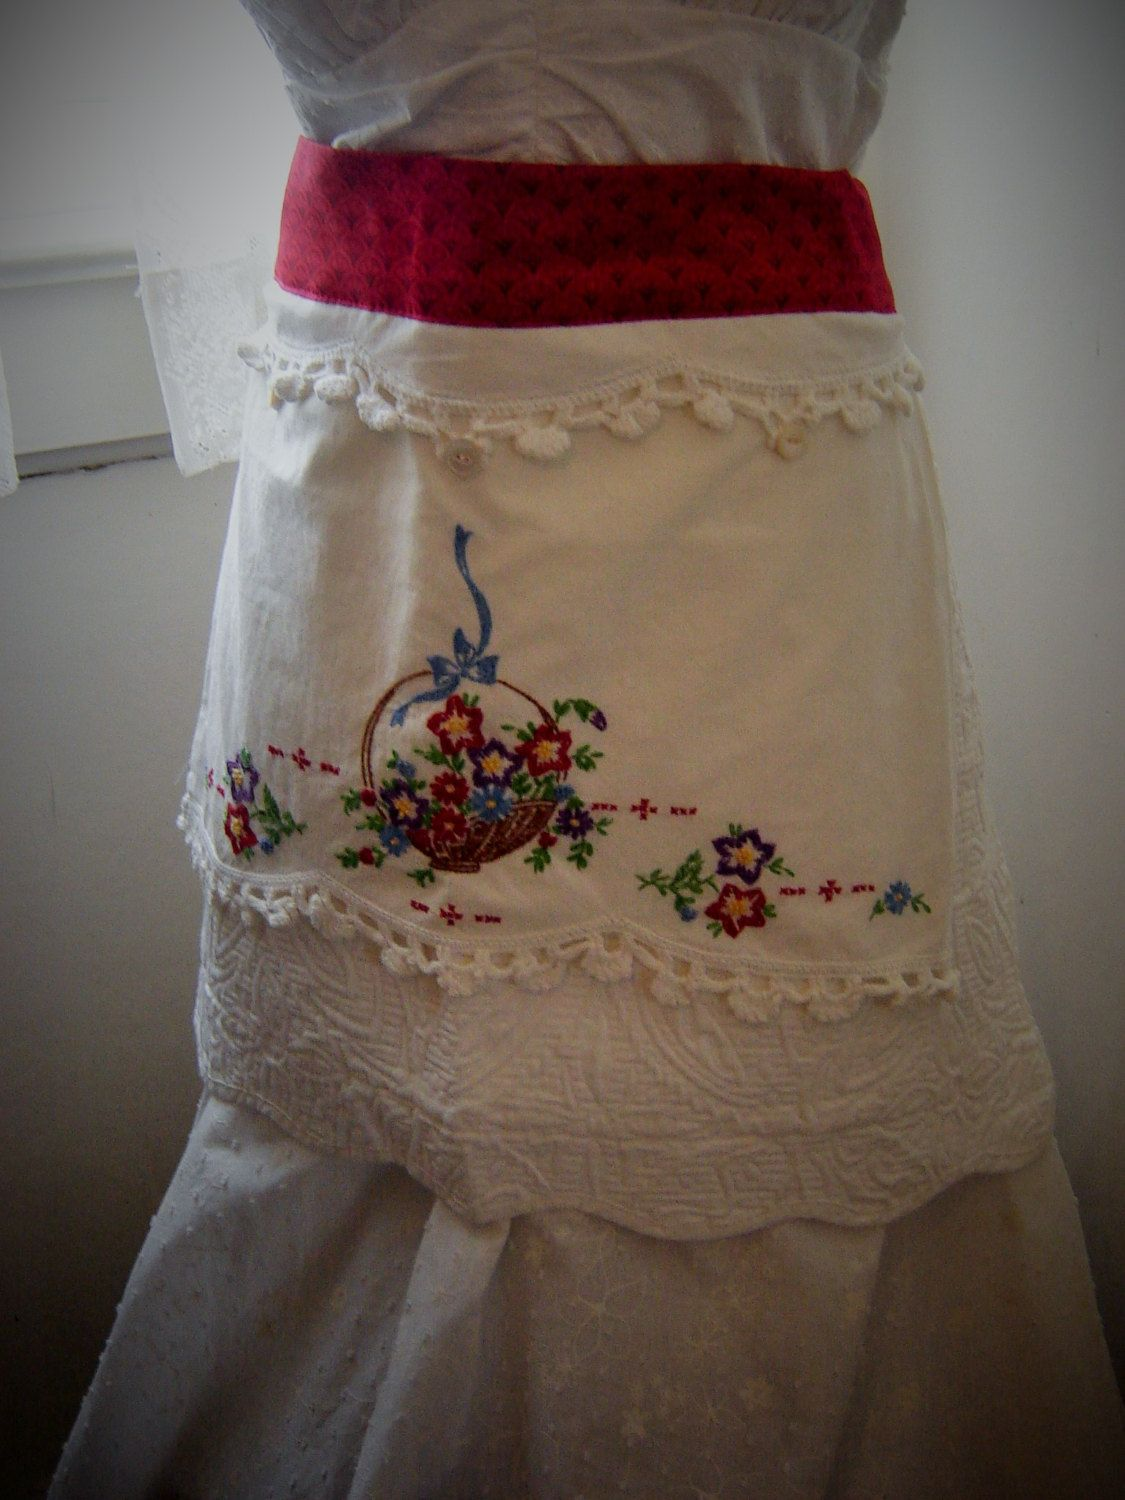 White apron etsy - Vintage Embroidery Red White Apron By Sweetrobinsnest On Etsy